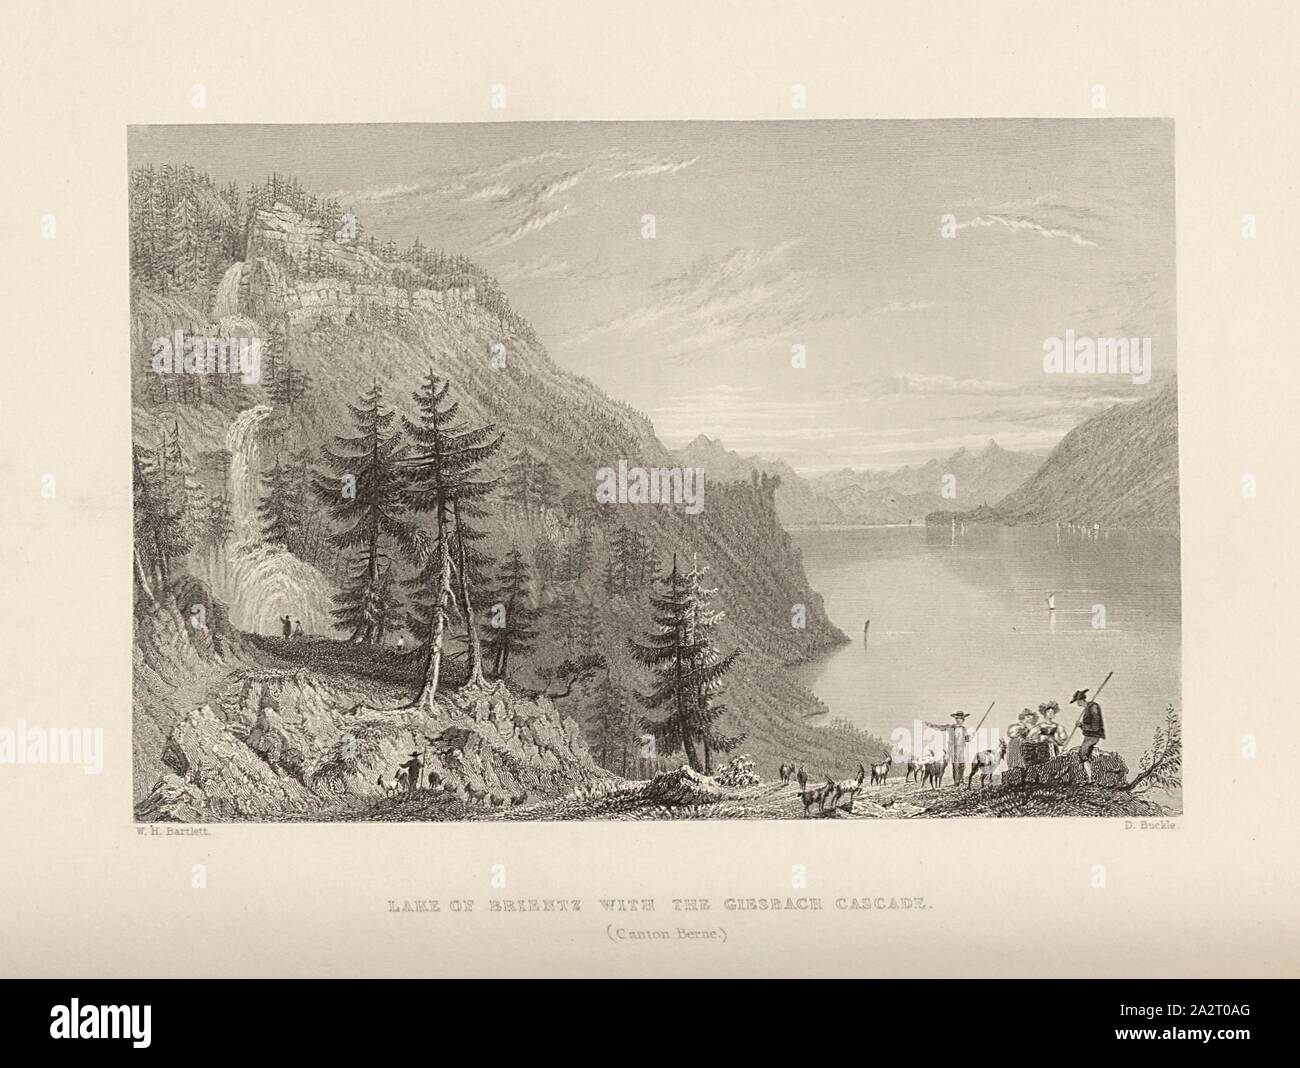 Lake of Brientz with the Giesbach cascade. (Canton Berne), View of the Giessbach Falls and Lake Brienz, Signed: W. H. Bartlett, D. Buckle, Plate 25, to p. 102 (Vol. 2), Bartlett, William Henry; Buckle, D., 1835, William Beattie, Switzerland. London: Virtue, 1836 Stock Photo